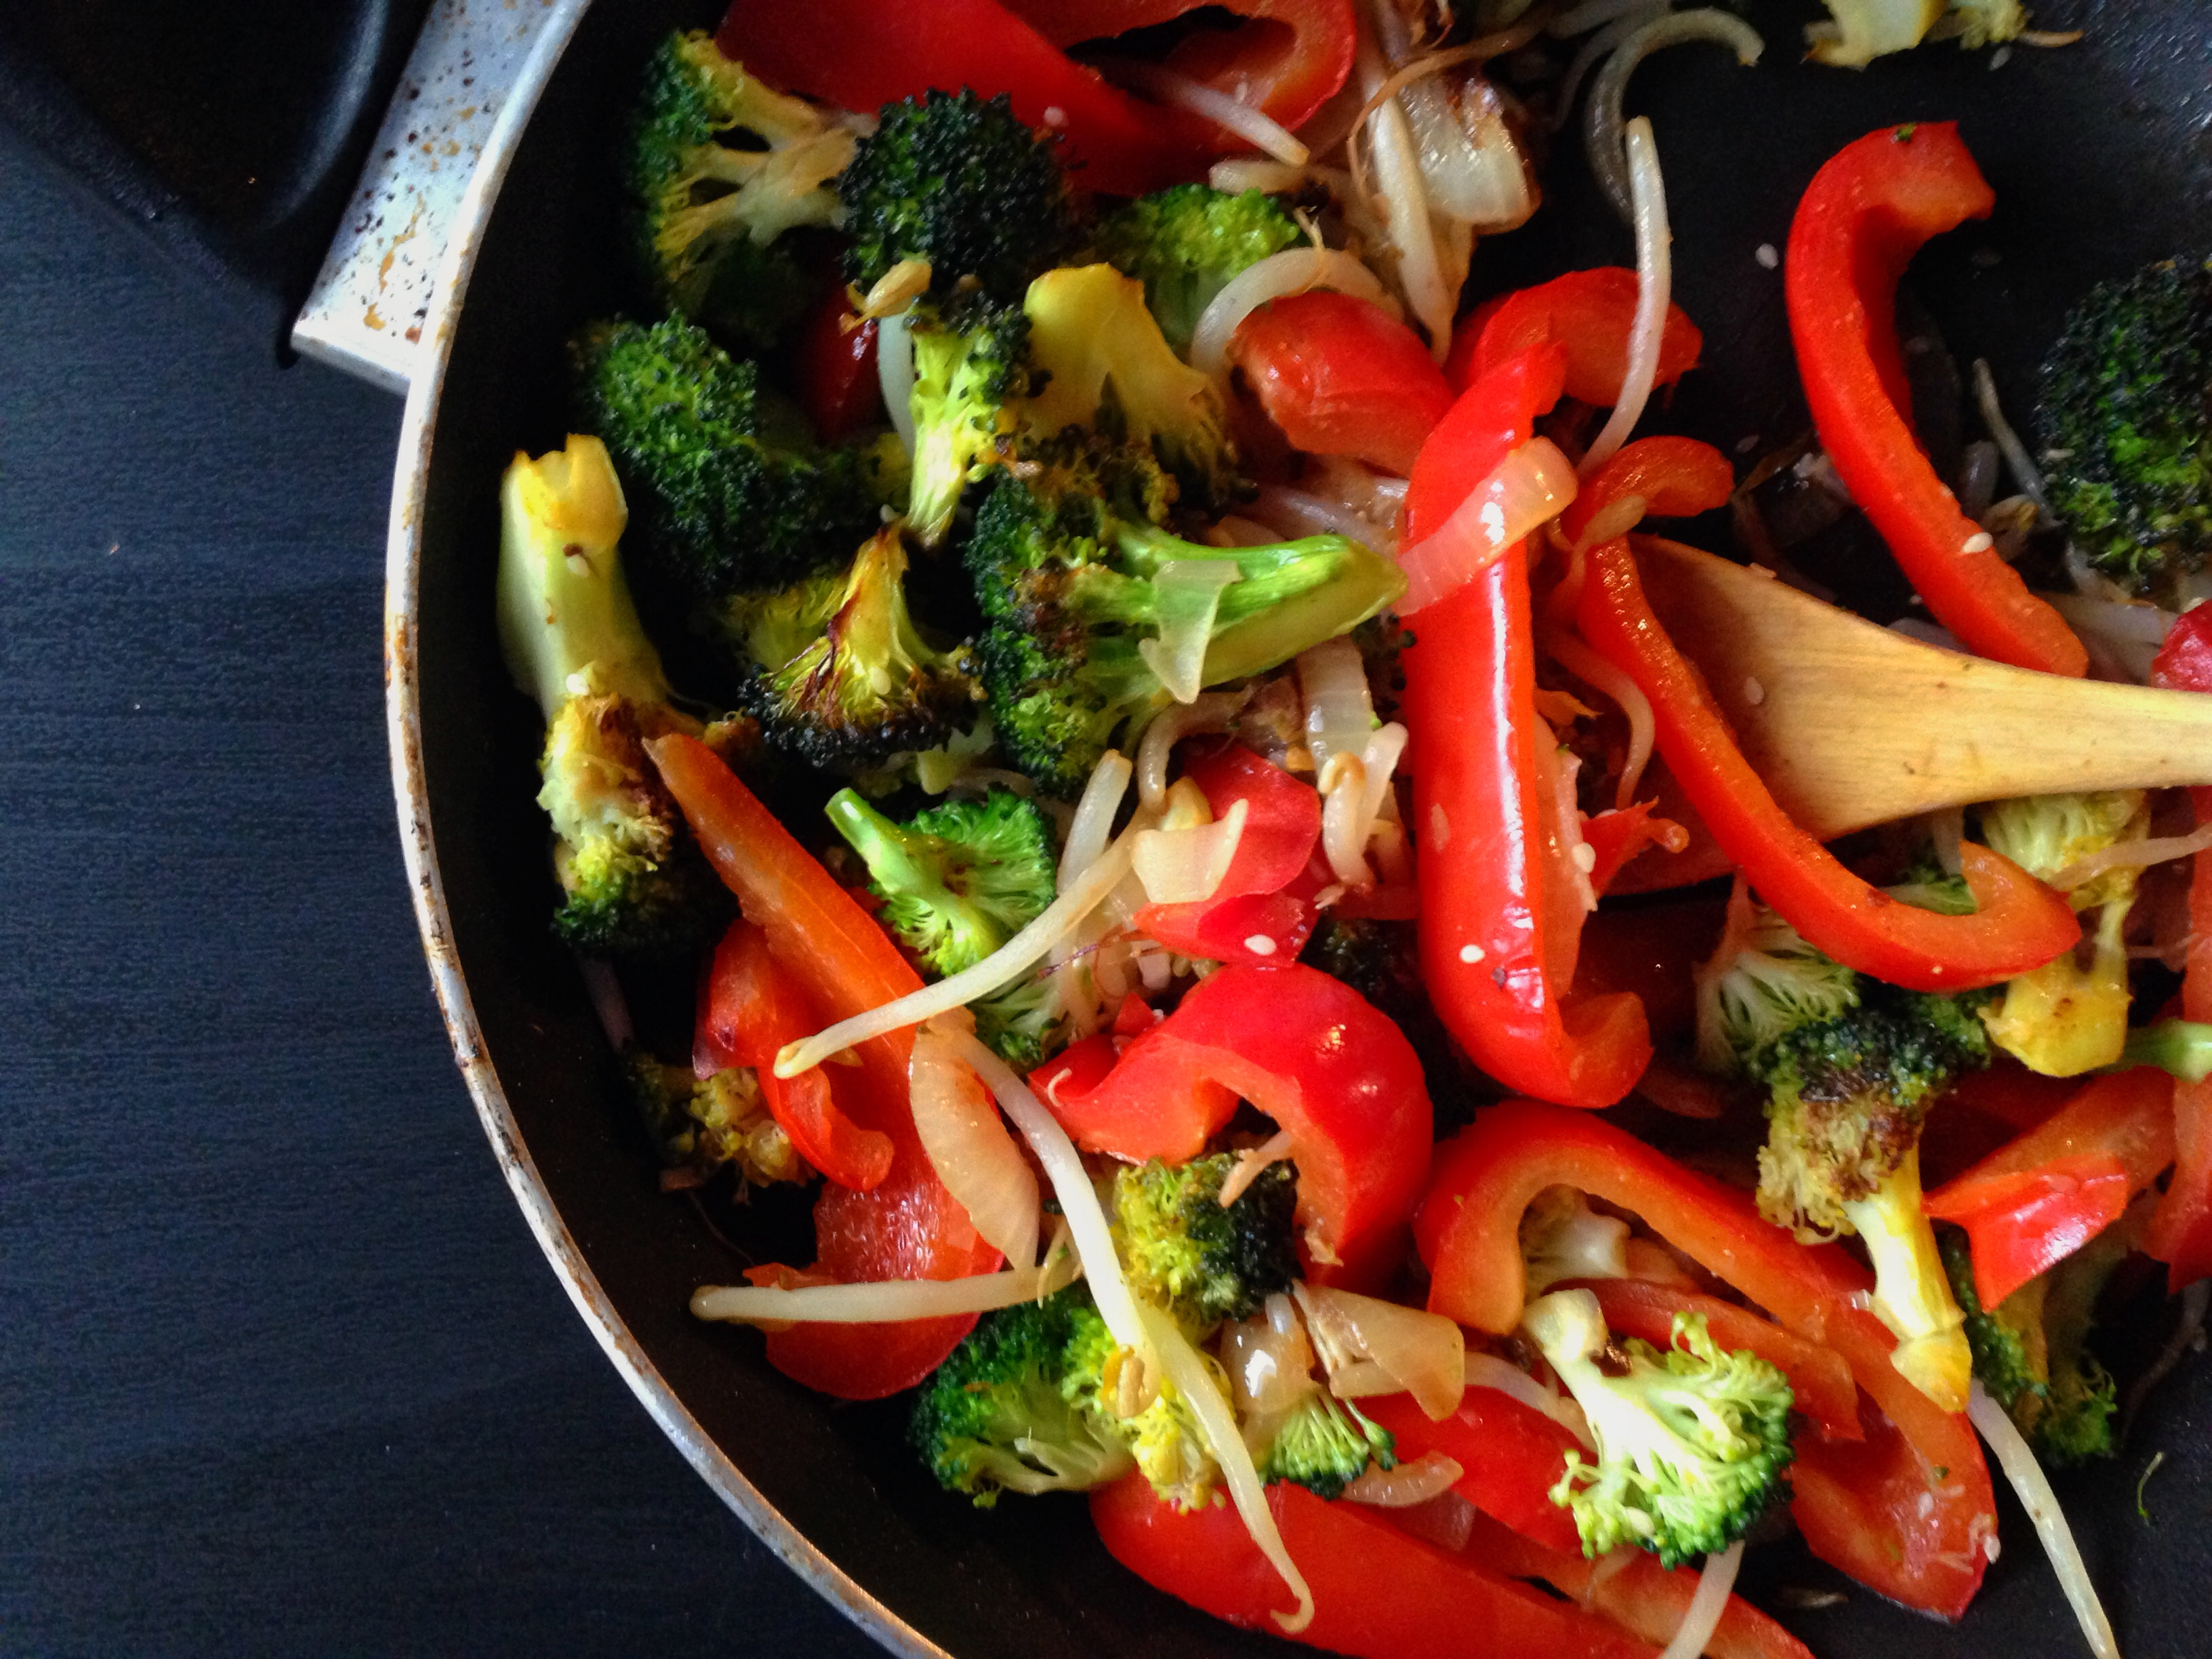 Sauté your veggies!